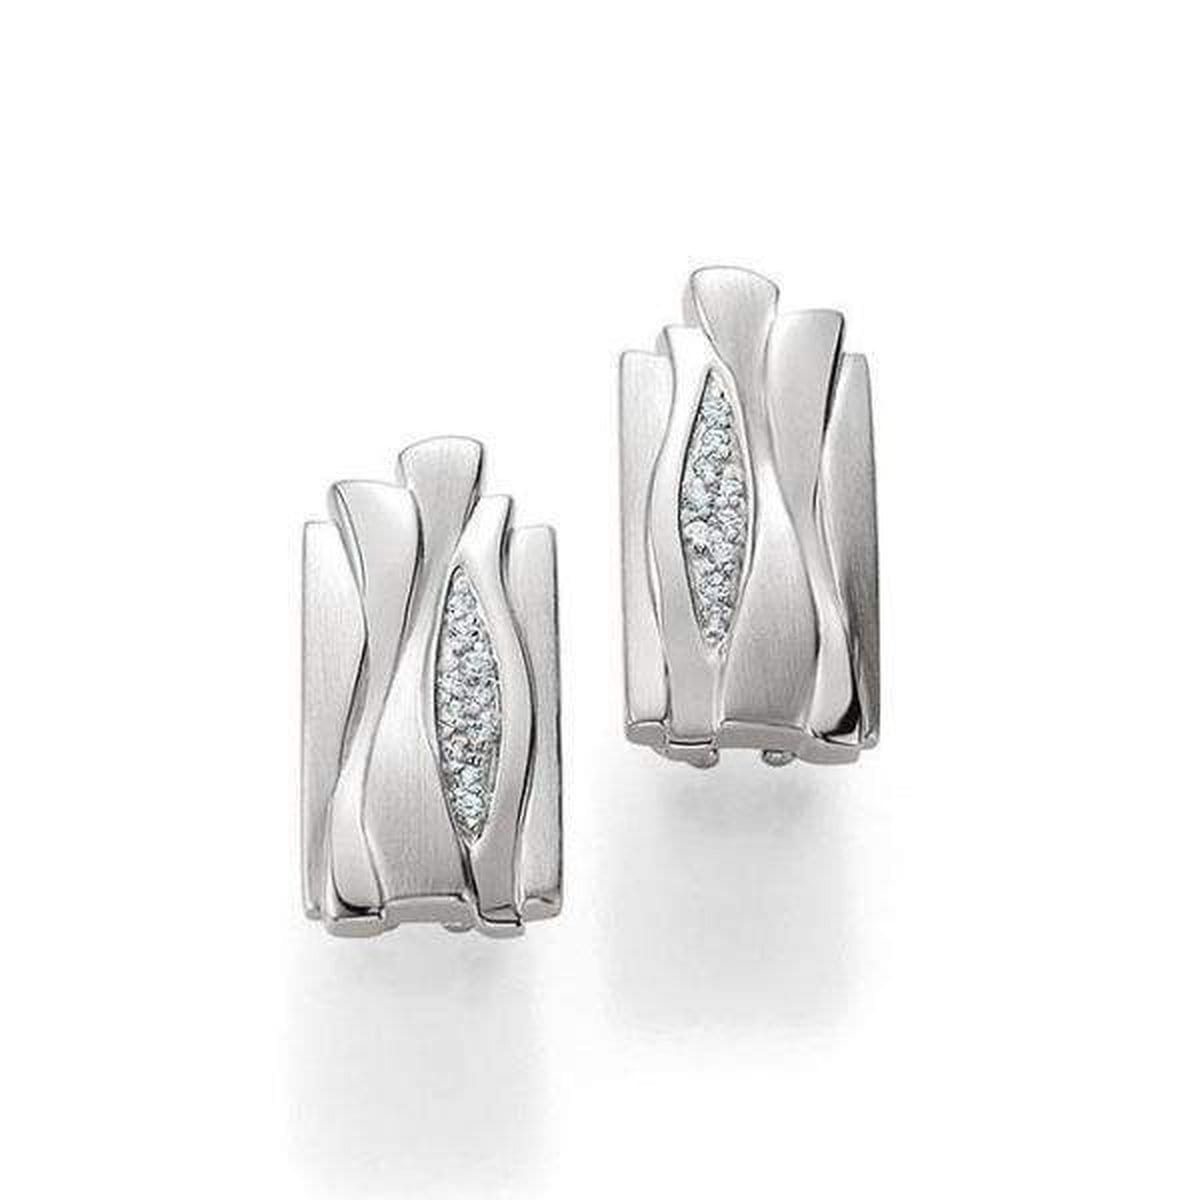 Sterling Silver White Sapphire Earrings - 02/03668-Breuning-Renee Taylor Gallery